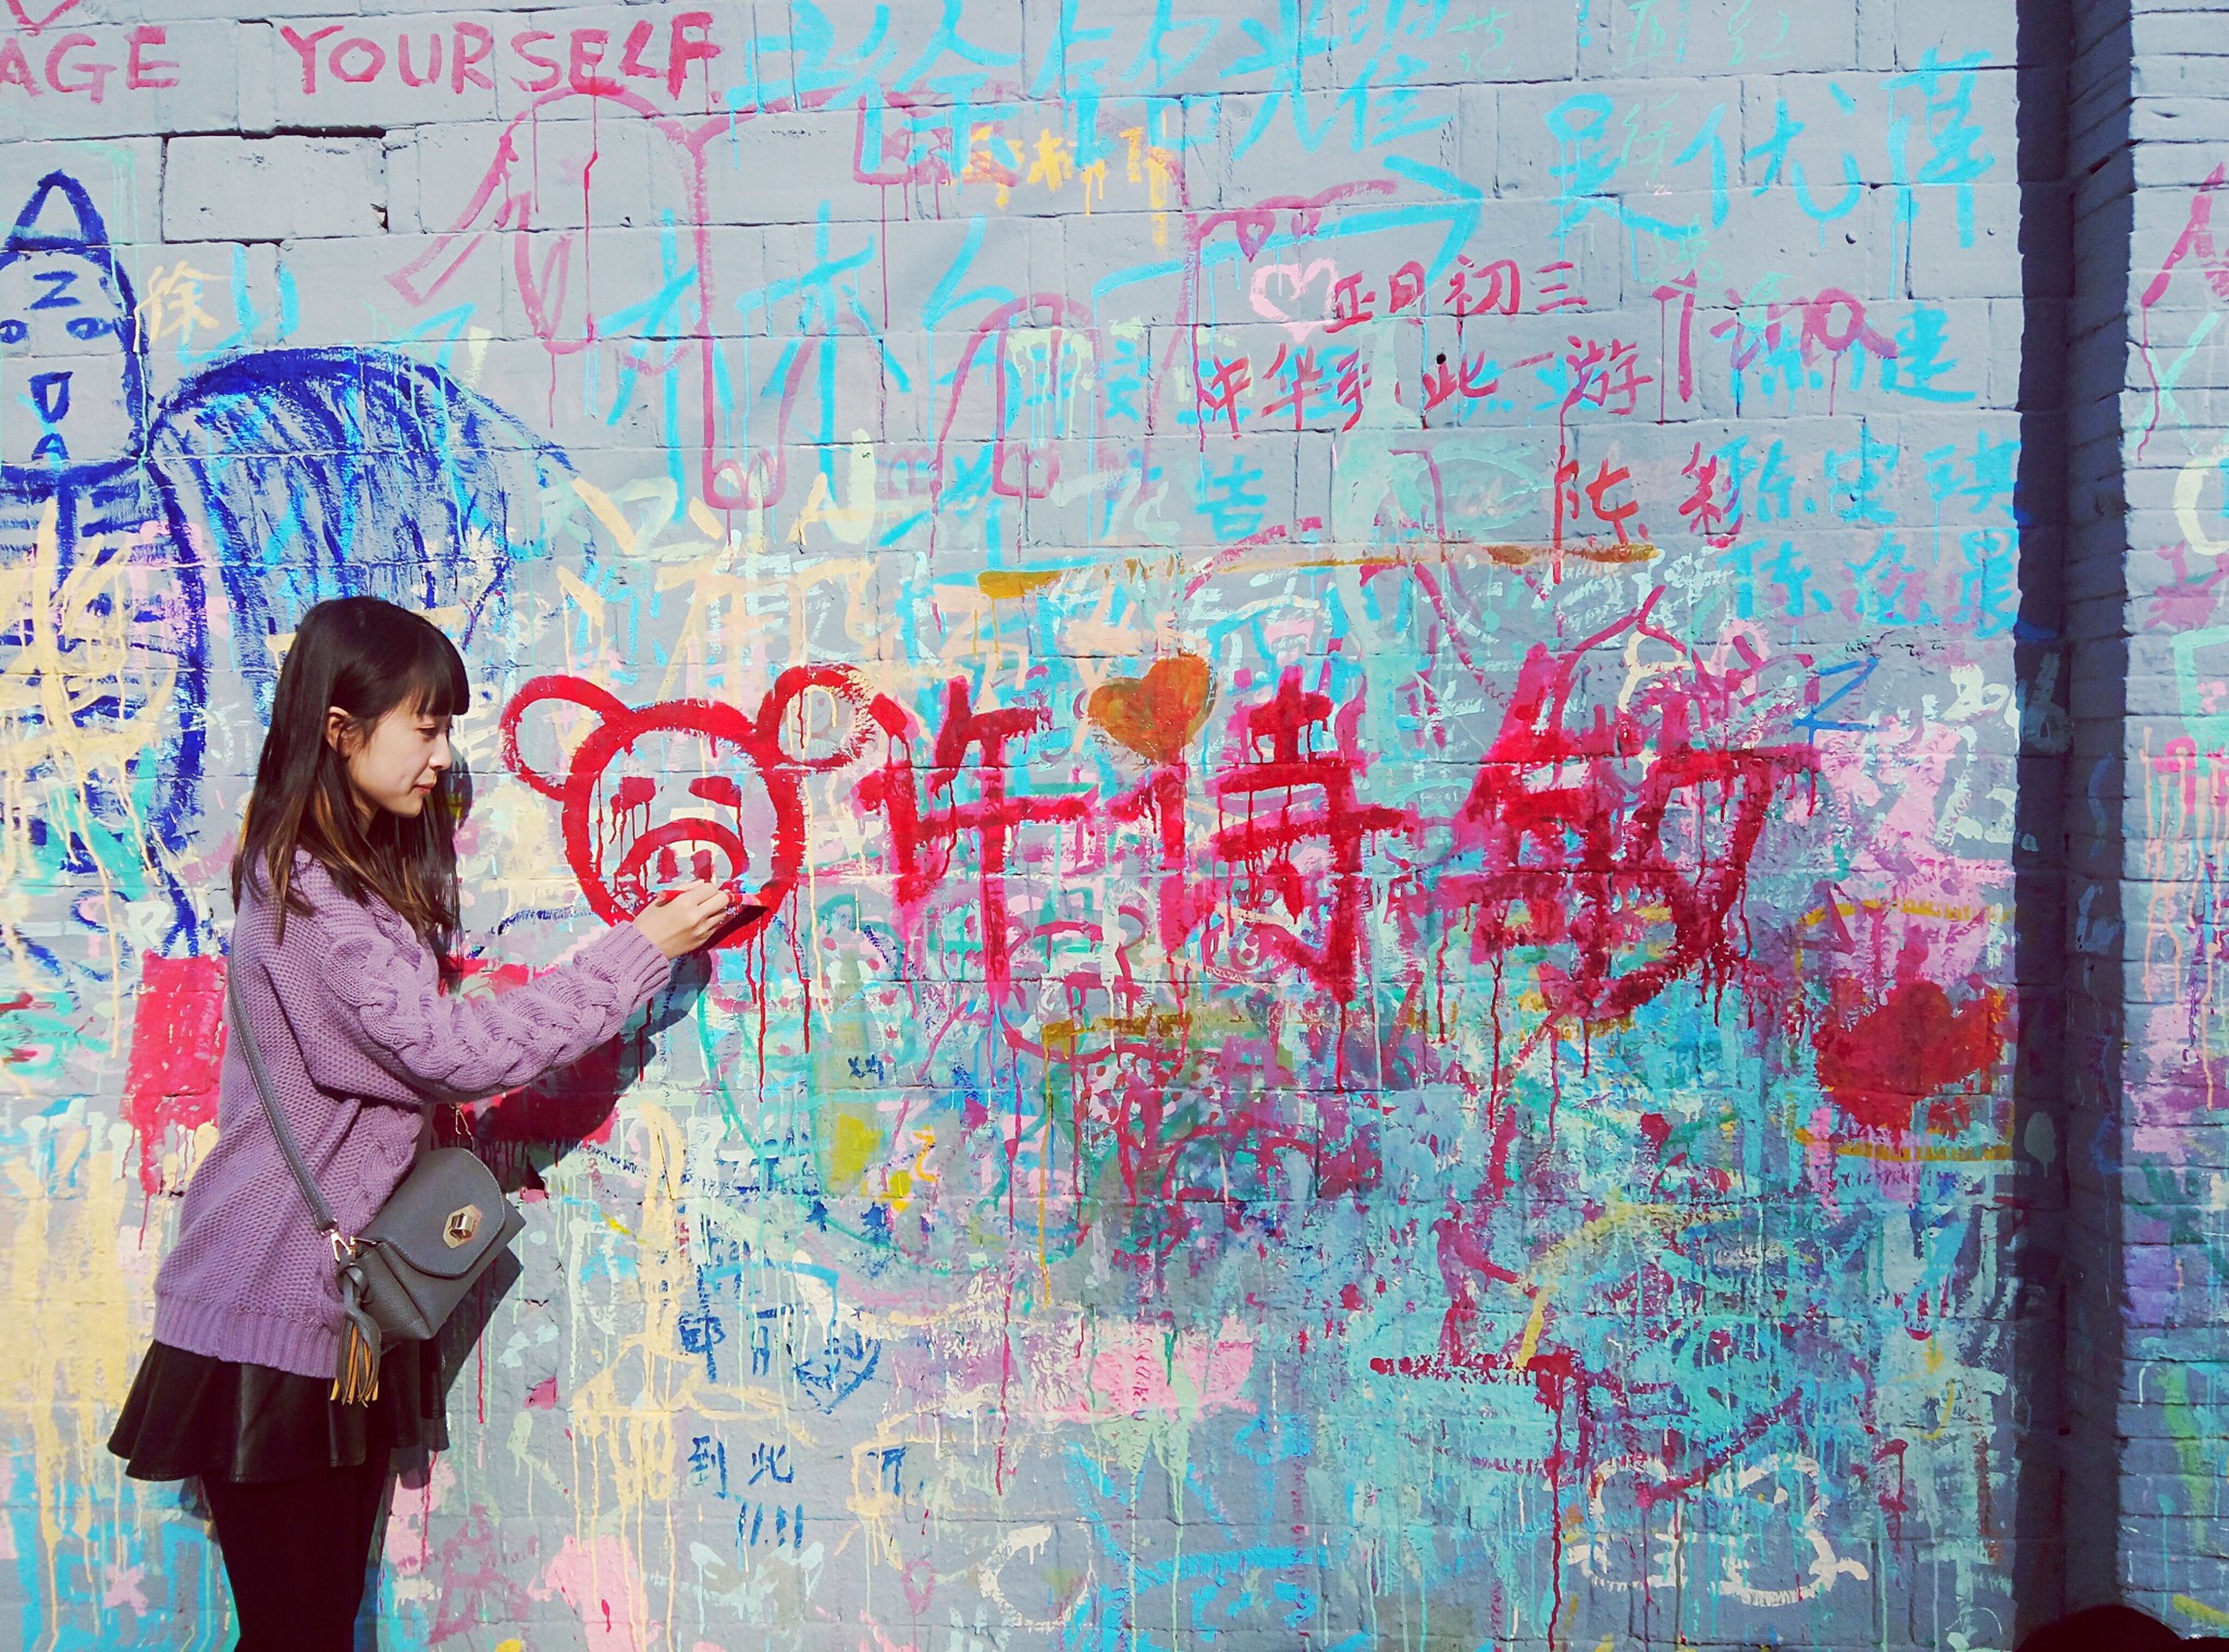 graffiti, wall - building feature, art, text, creativity, art and craft, communication, western script, human representation, wall, built structure, architecture, painting, building exterior, non-western script, multi colored, day, brick wall